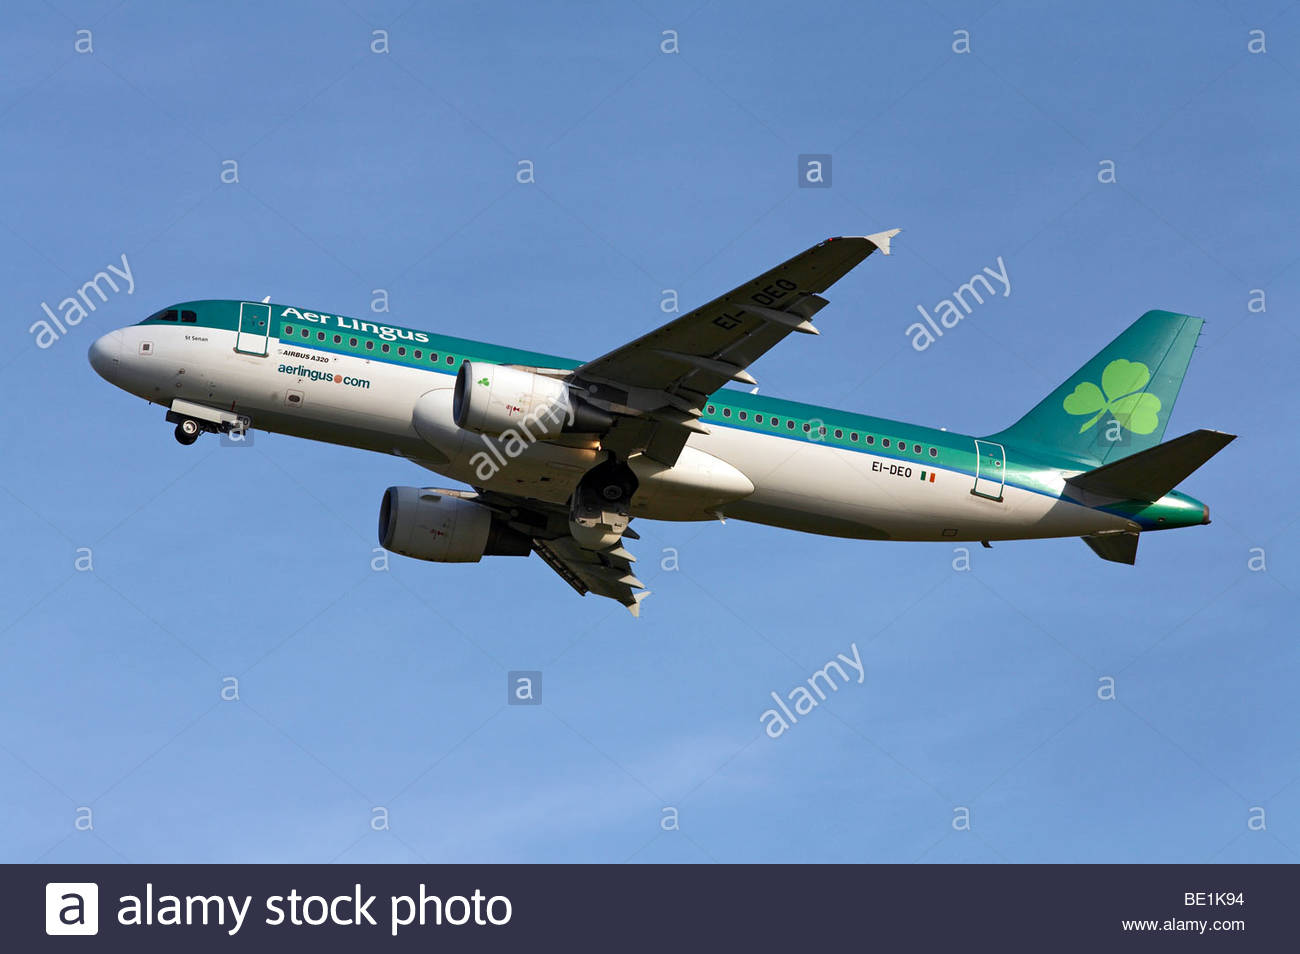 Aer Lingus Airbus A320 flight shortly after takeoff - Stock Image